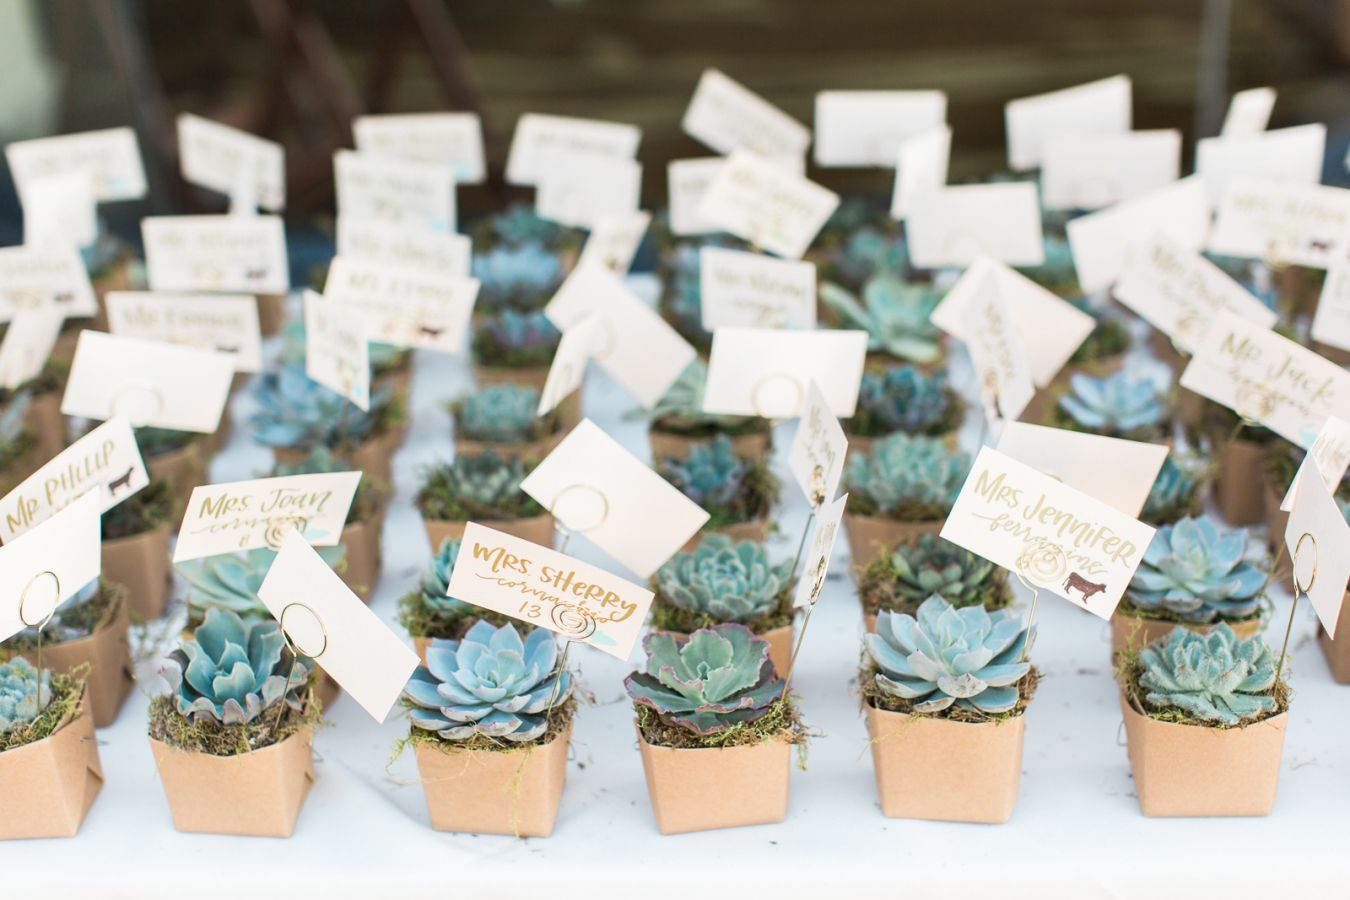 Creative Wedding Favor Ideas That Your Guests Will Enjoy Image 2